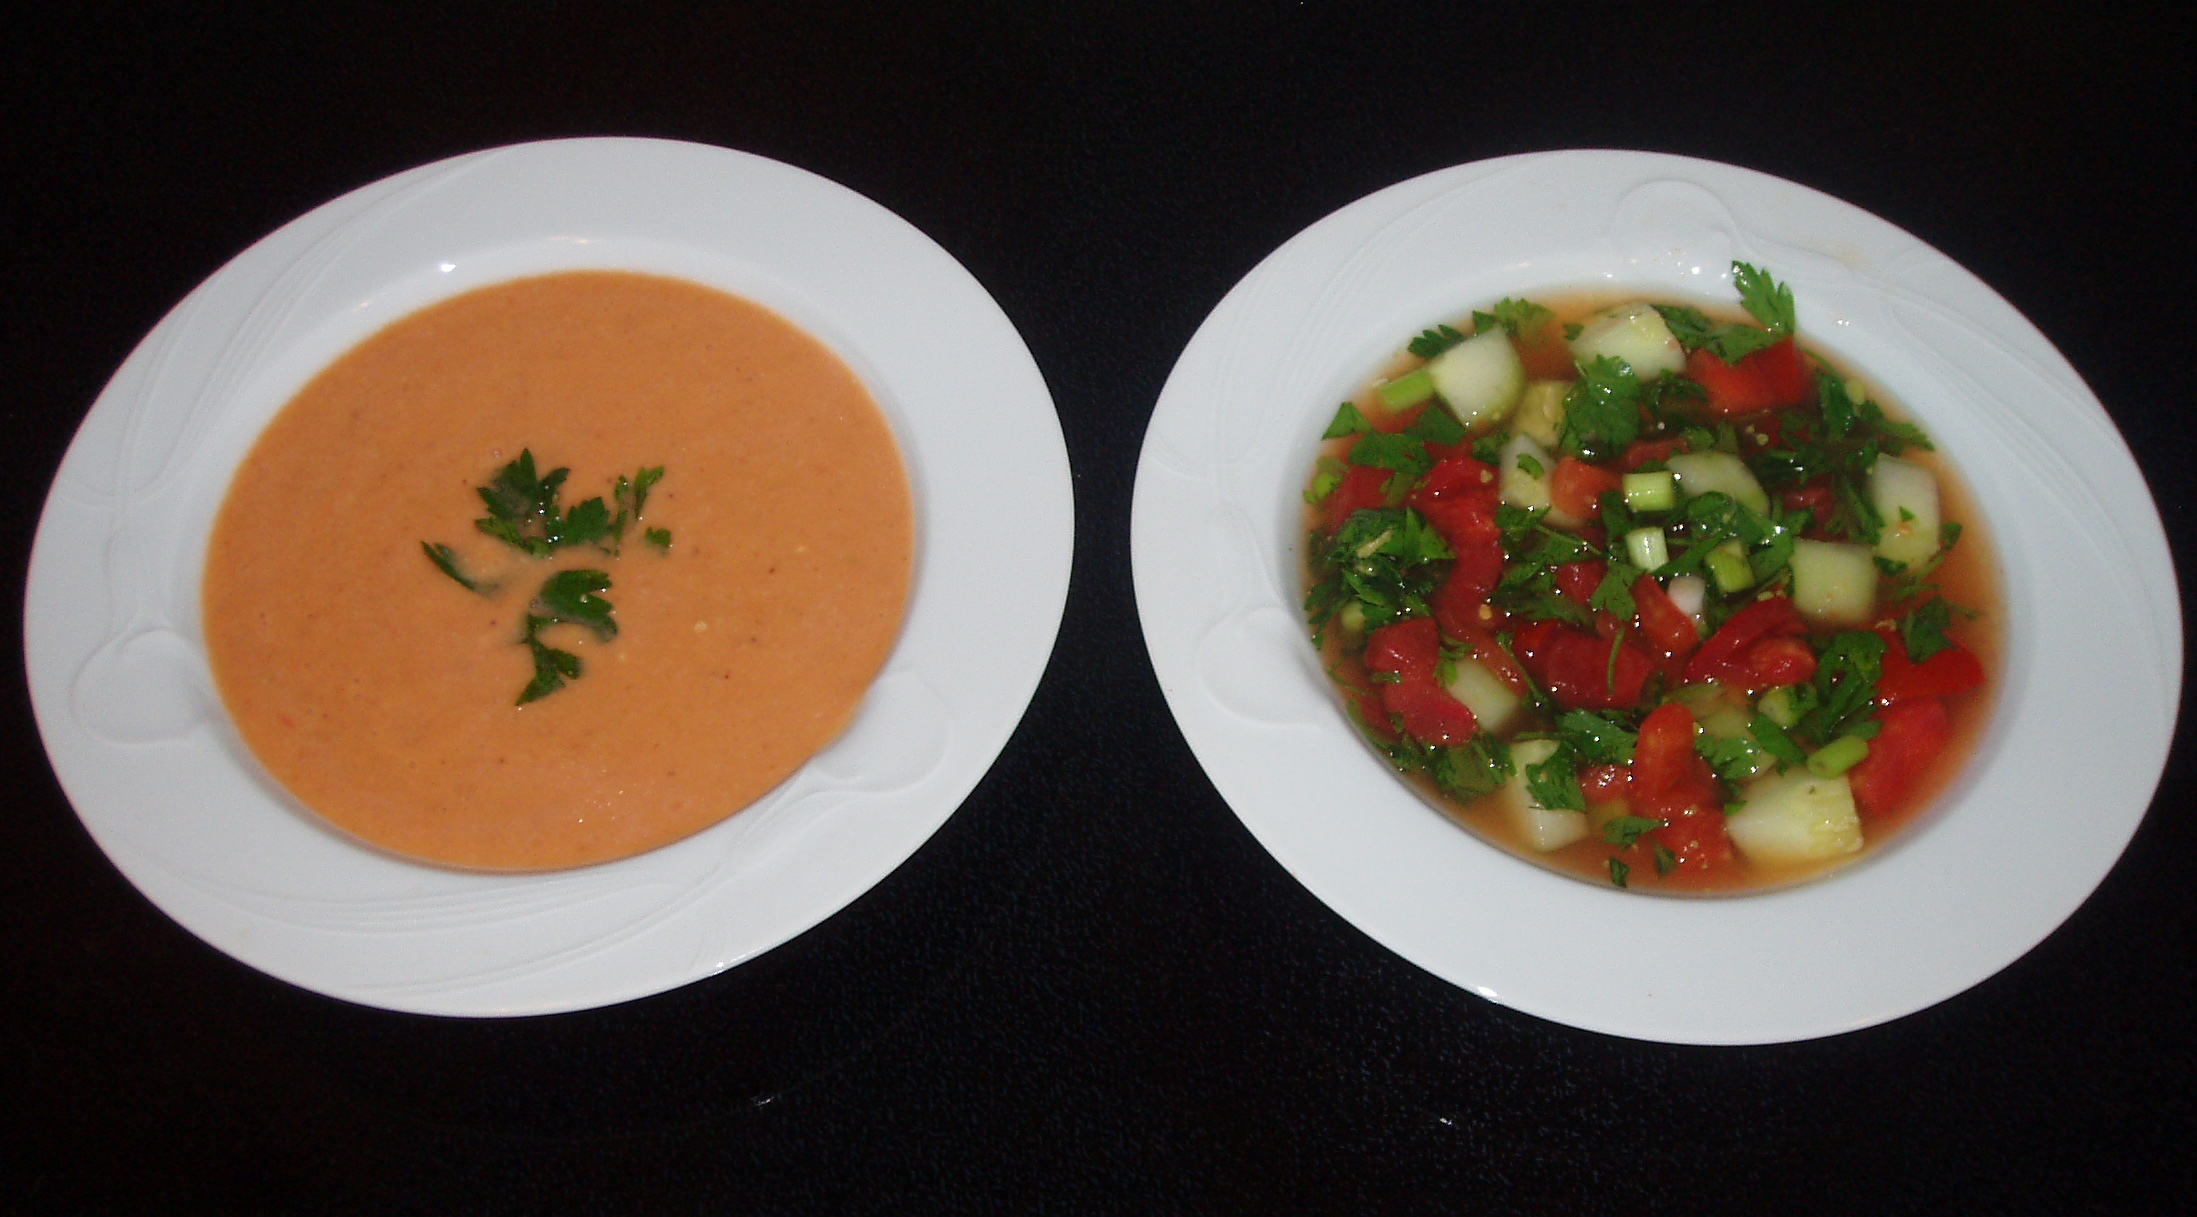 There are 2 popular versions of Gazpacho-the simple peasant soup and the one served in urban households